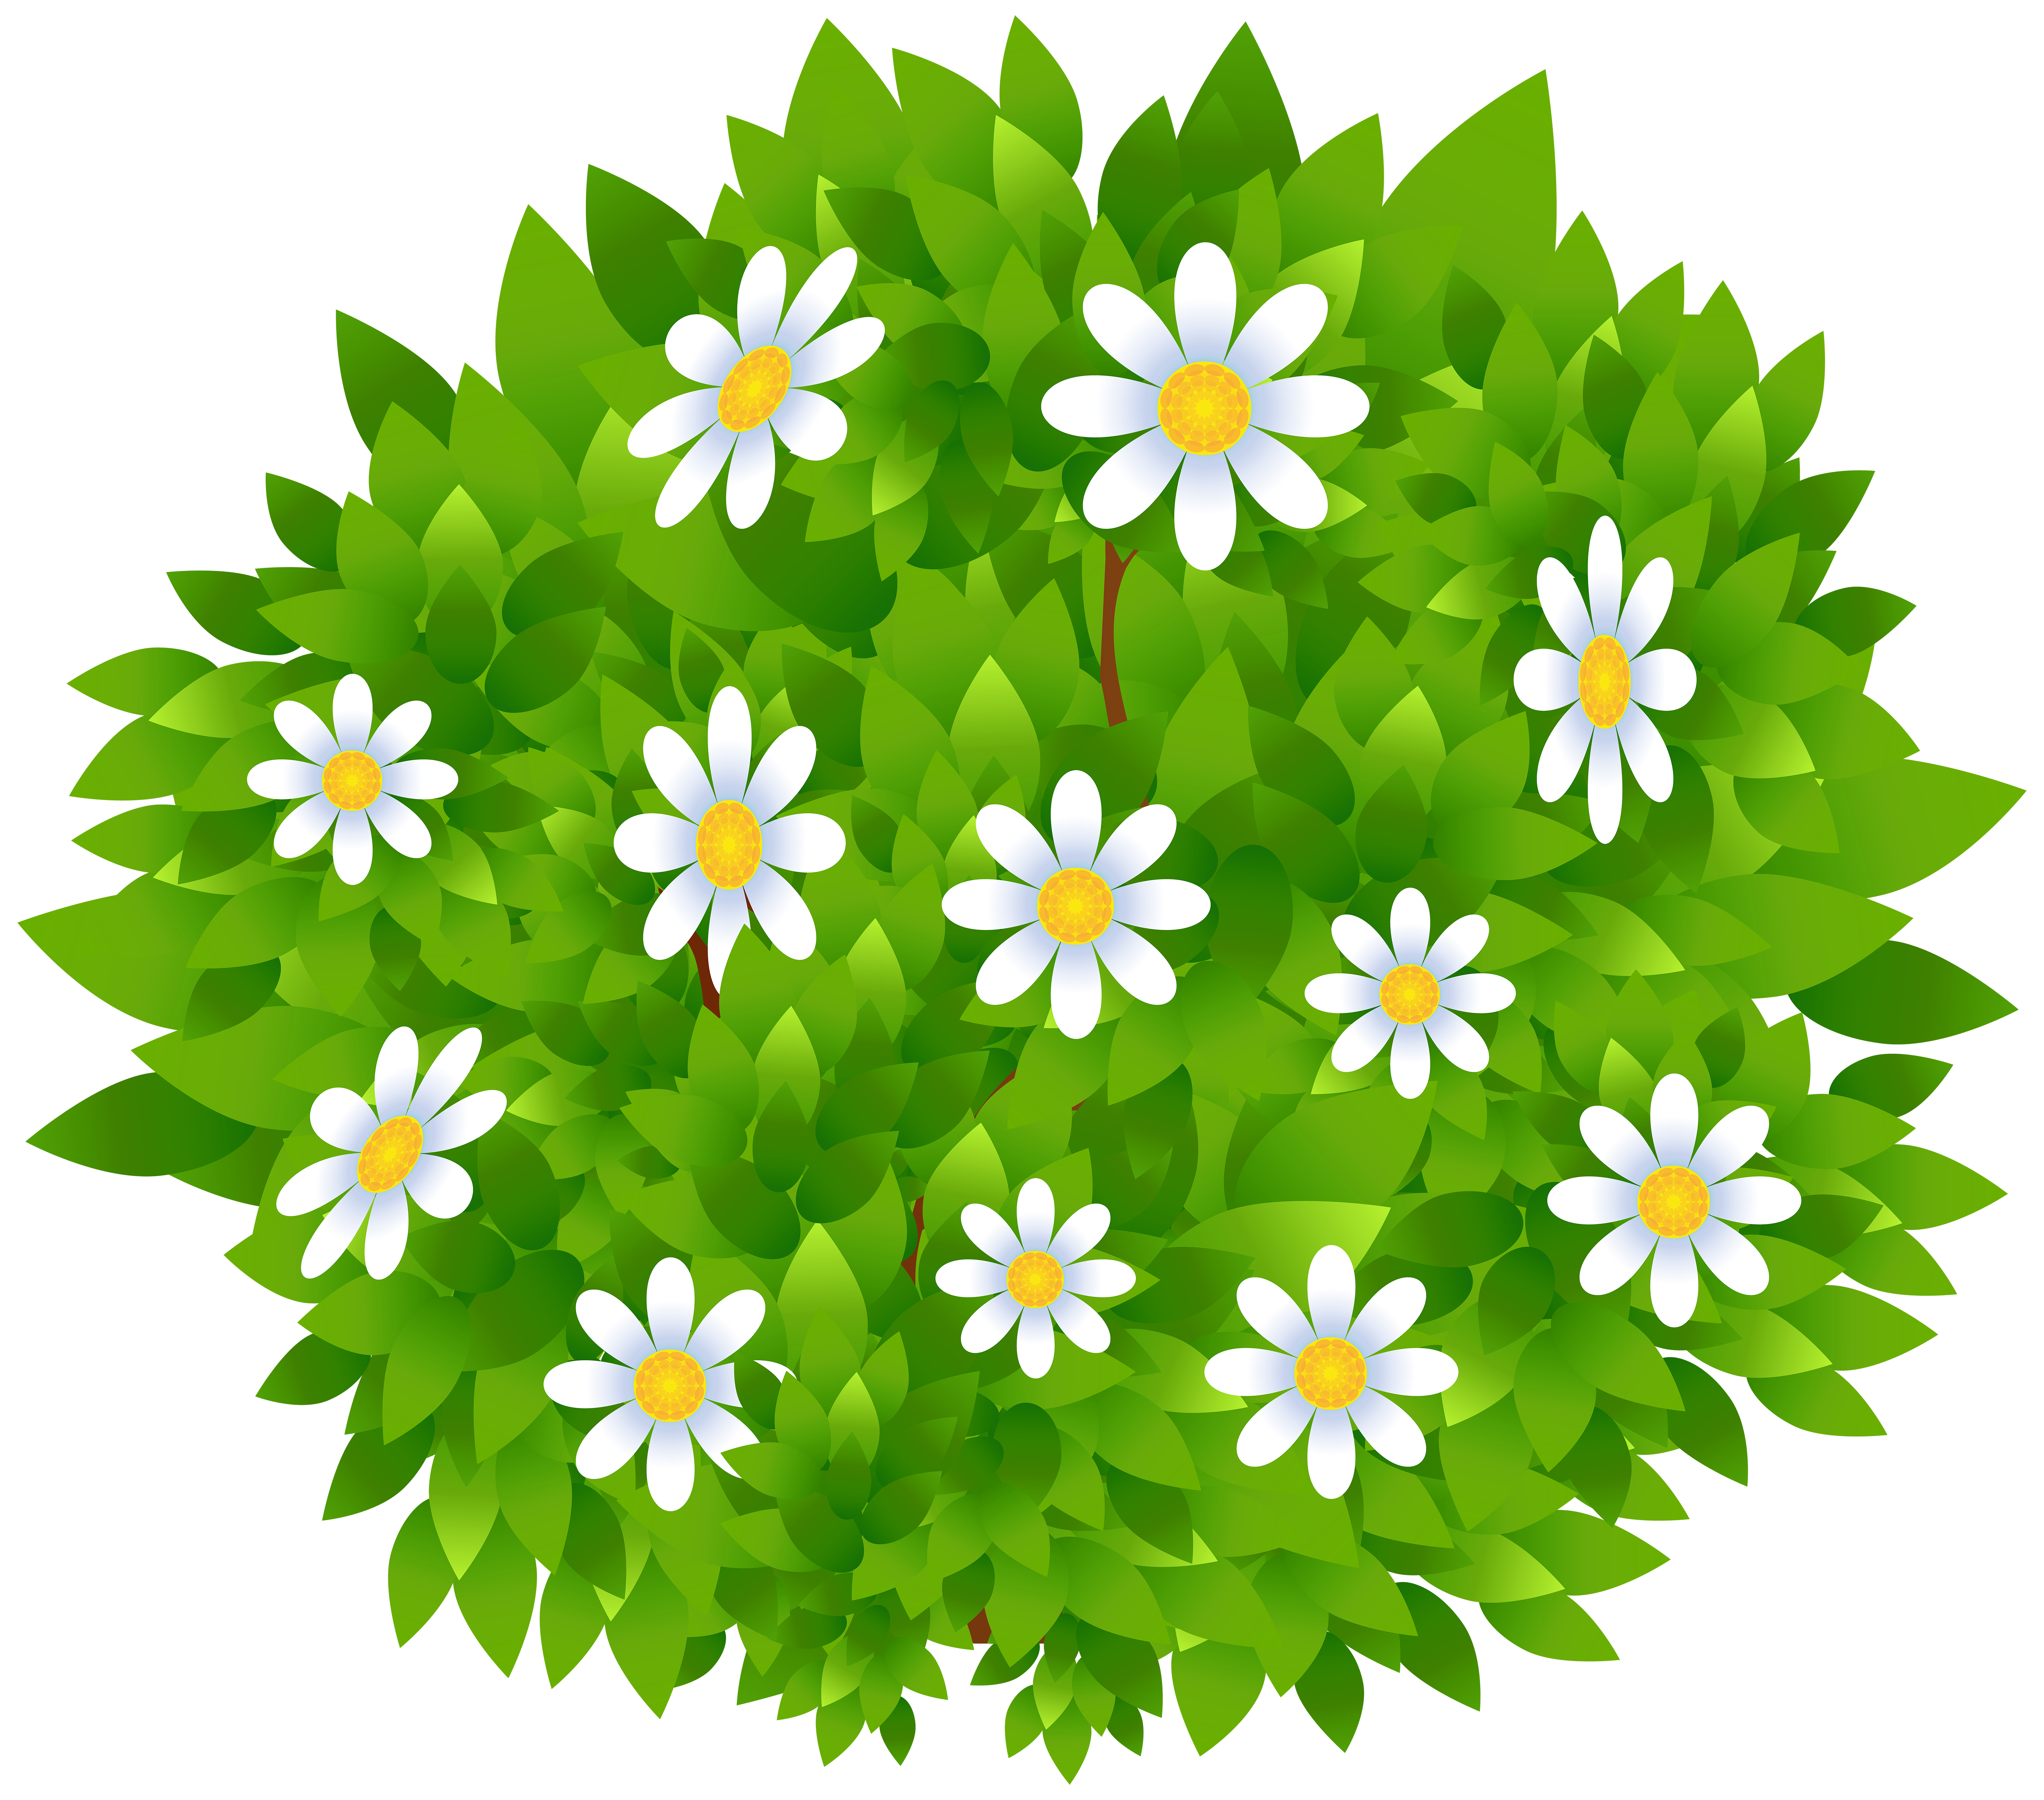 Flower bush clipart svg library stock Bush Clipart at GetDrawings.com   Free for personal use Bush Clipart ... svg library stock